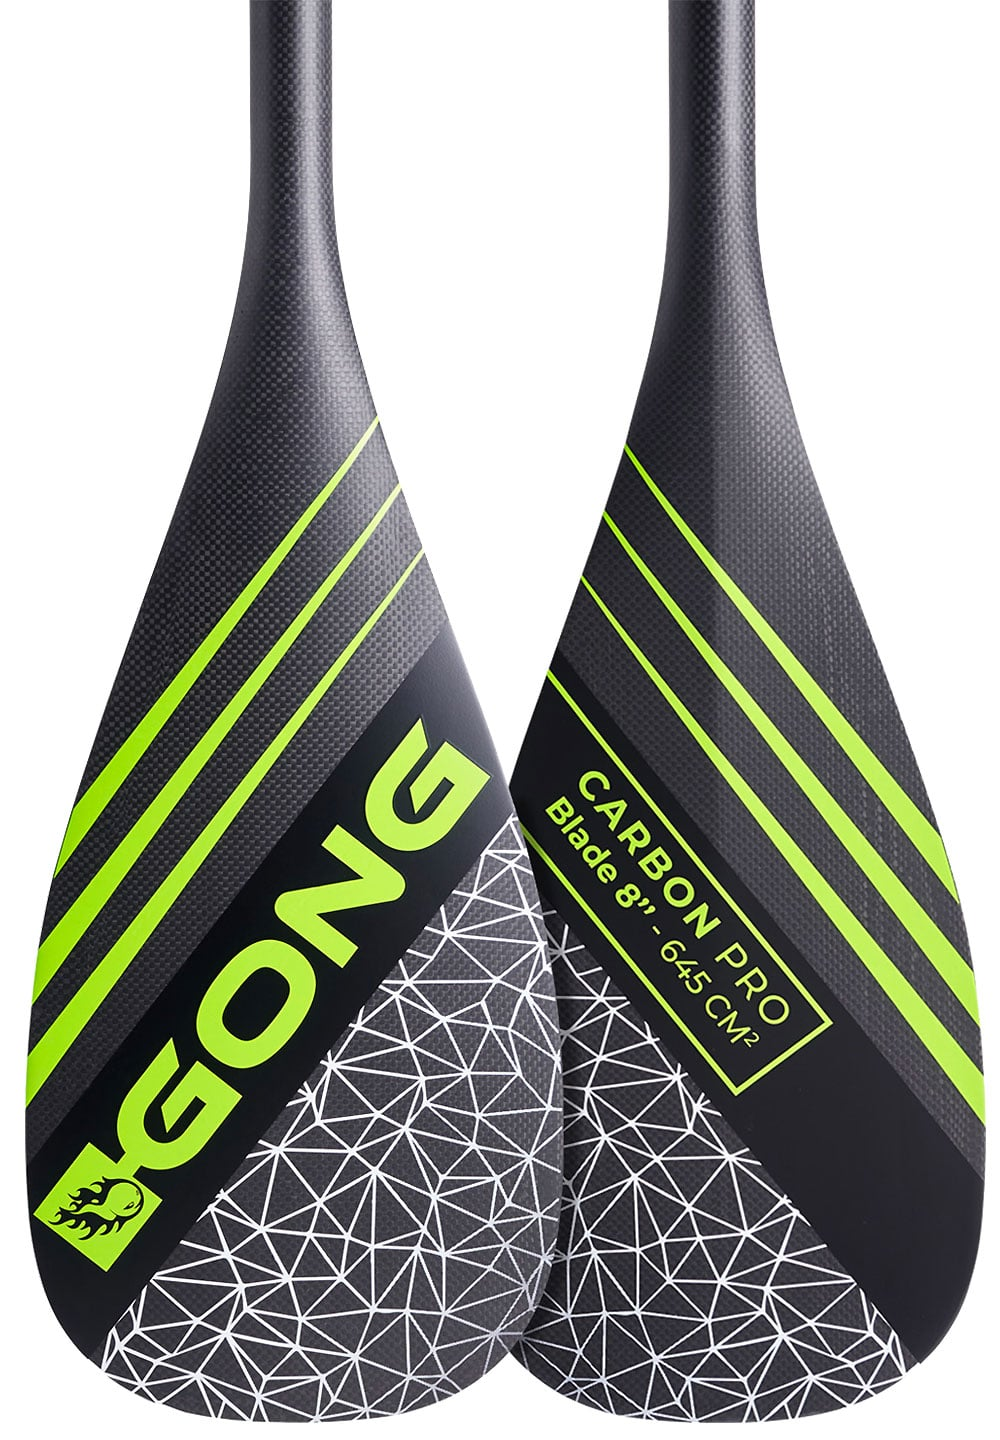 Pagaie Gong Carbon Pro stand up paddle poigne manche